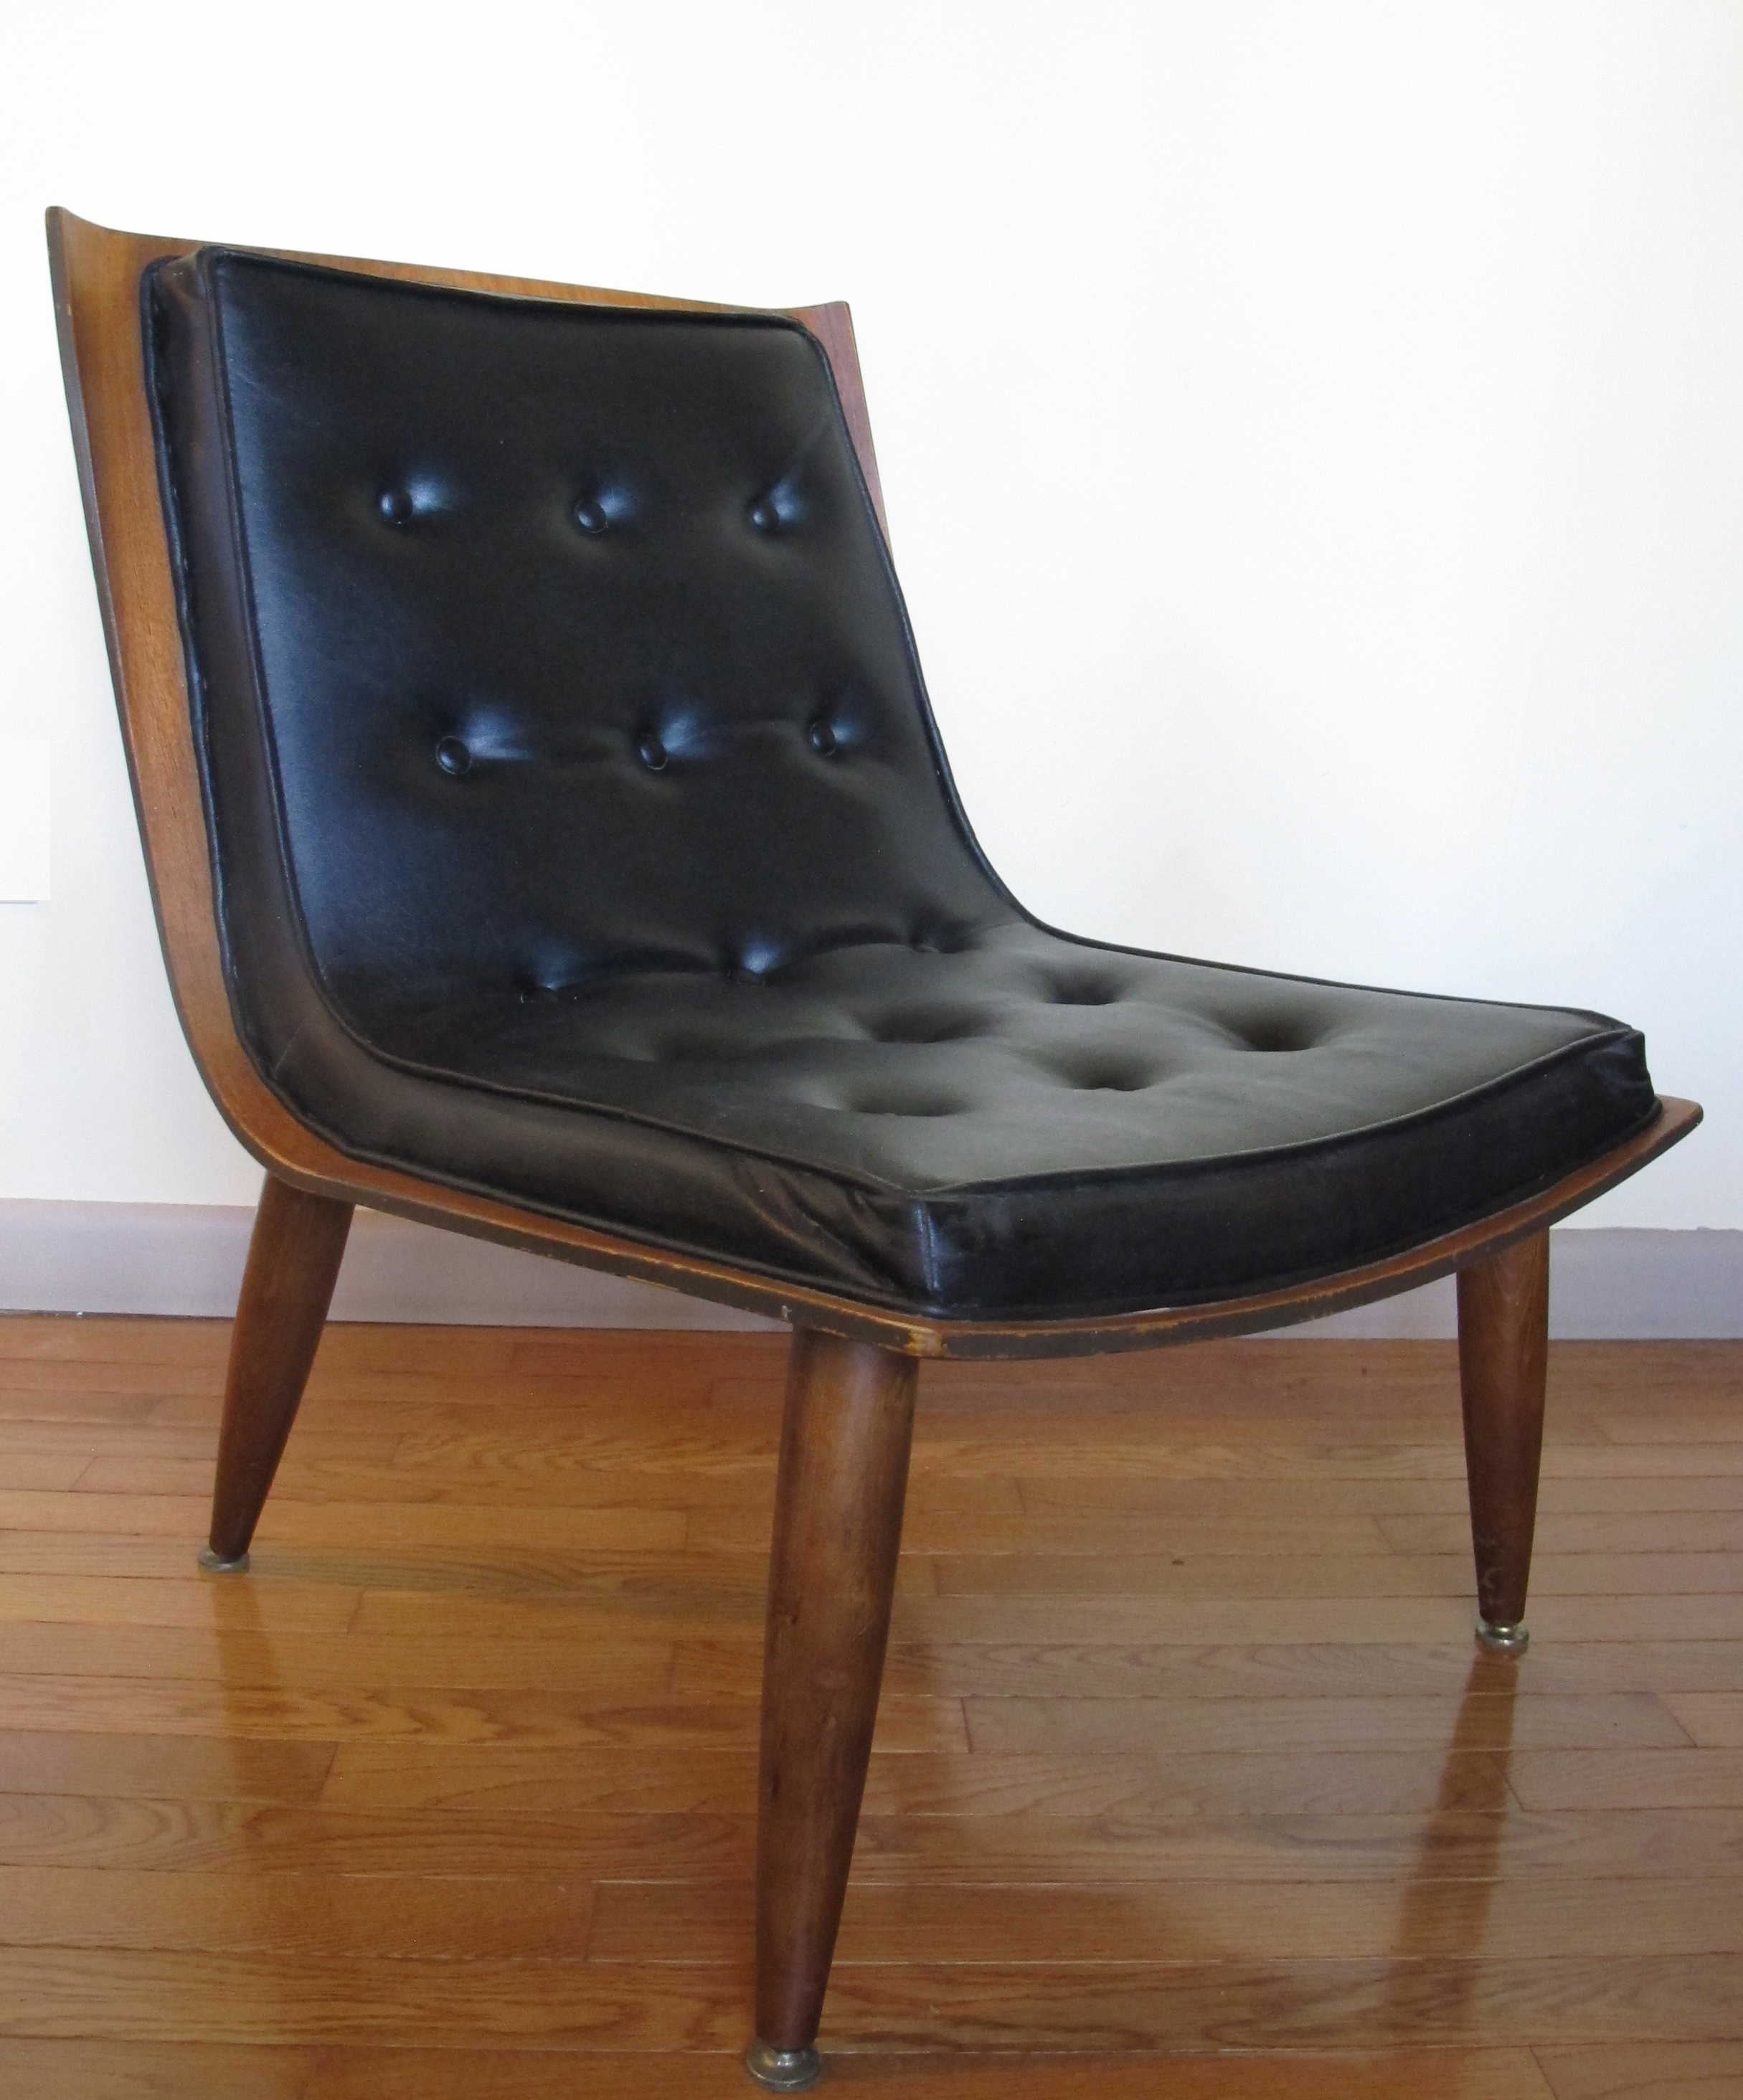 MID CENTURY SCOOP CHAIR BY CARTER BROS